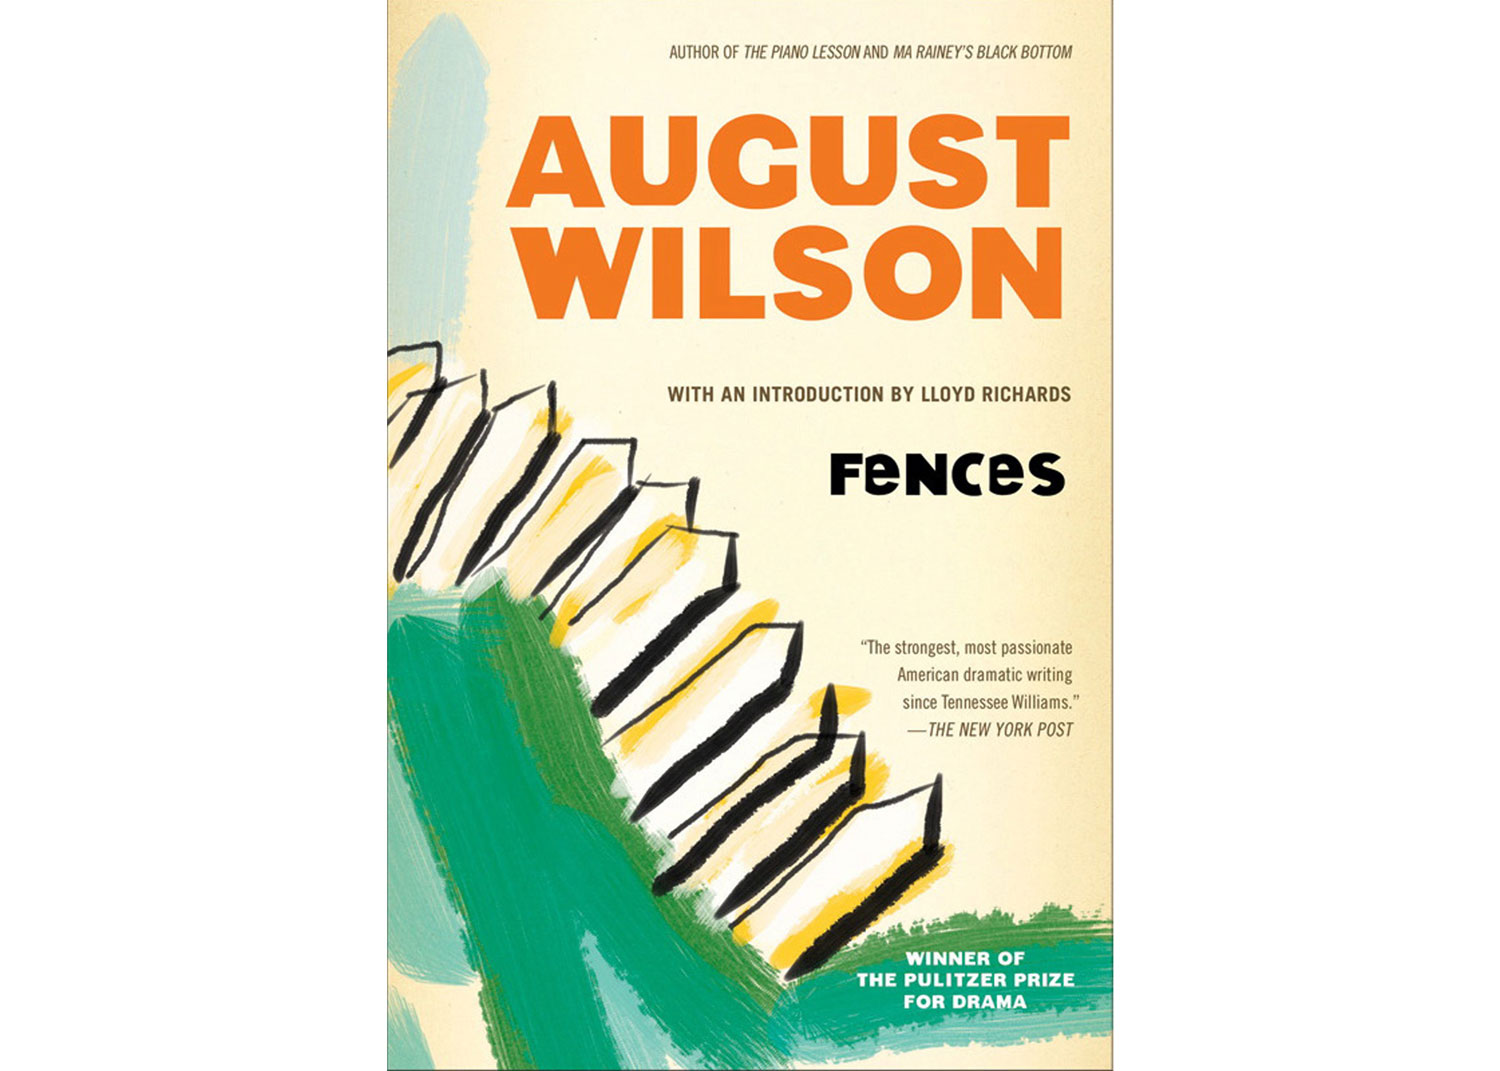 Fences, by August Wilson